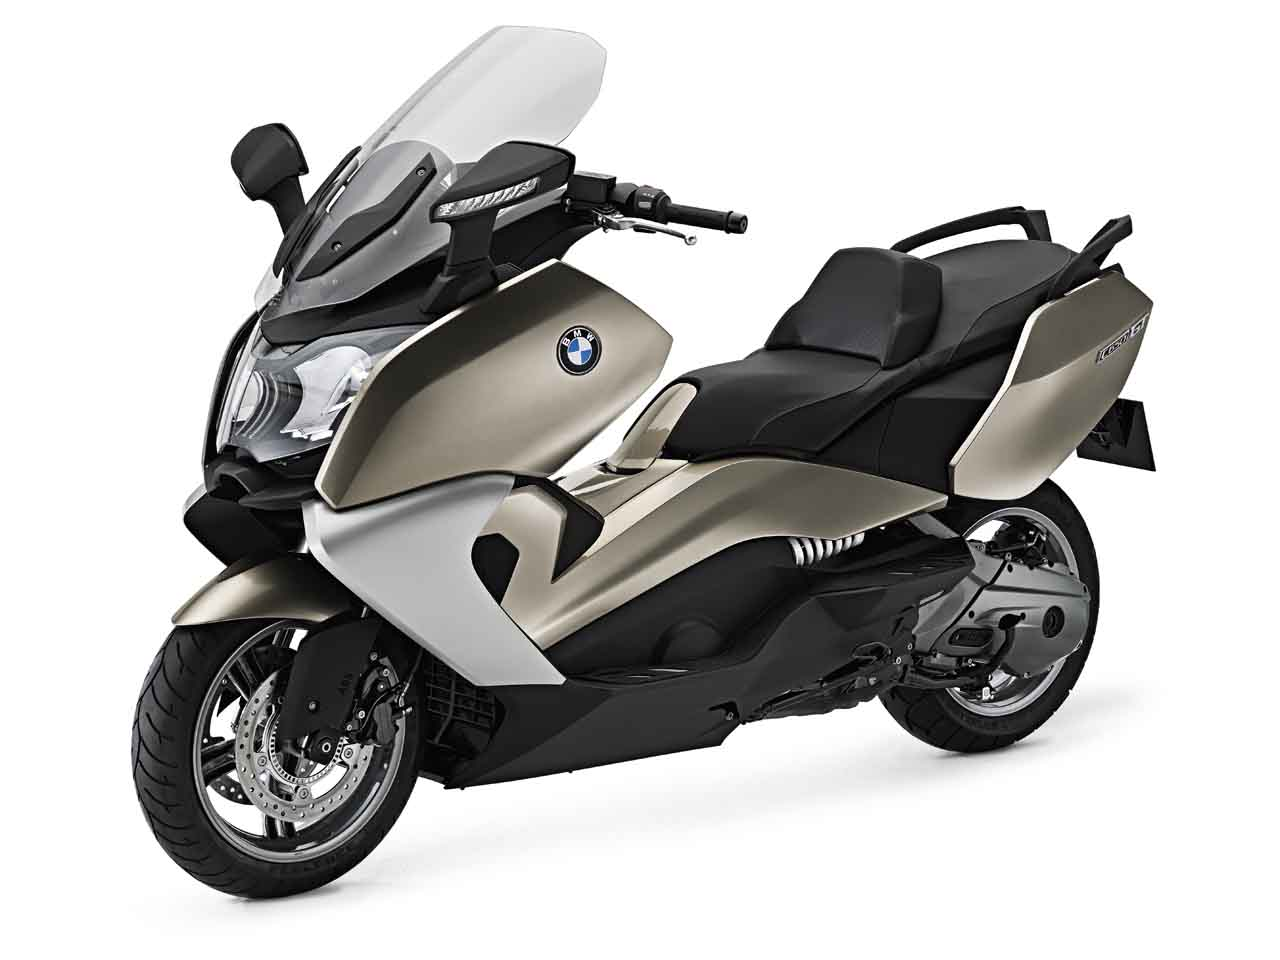 2013 BMW C 650 GT Pictures, Photos, Wallpapers.